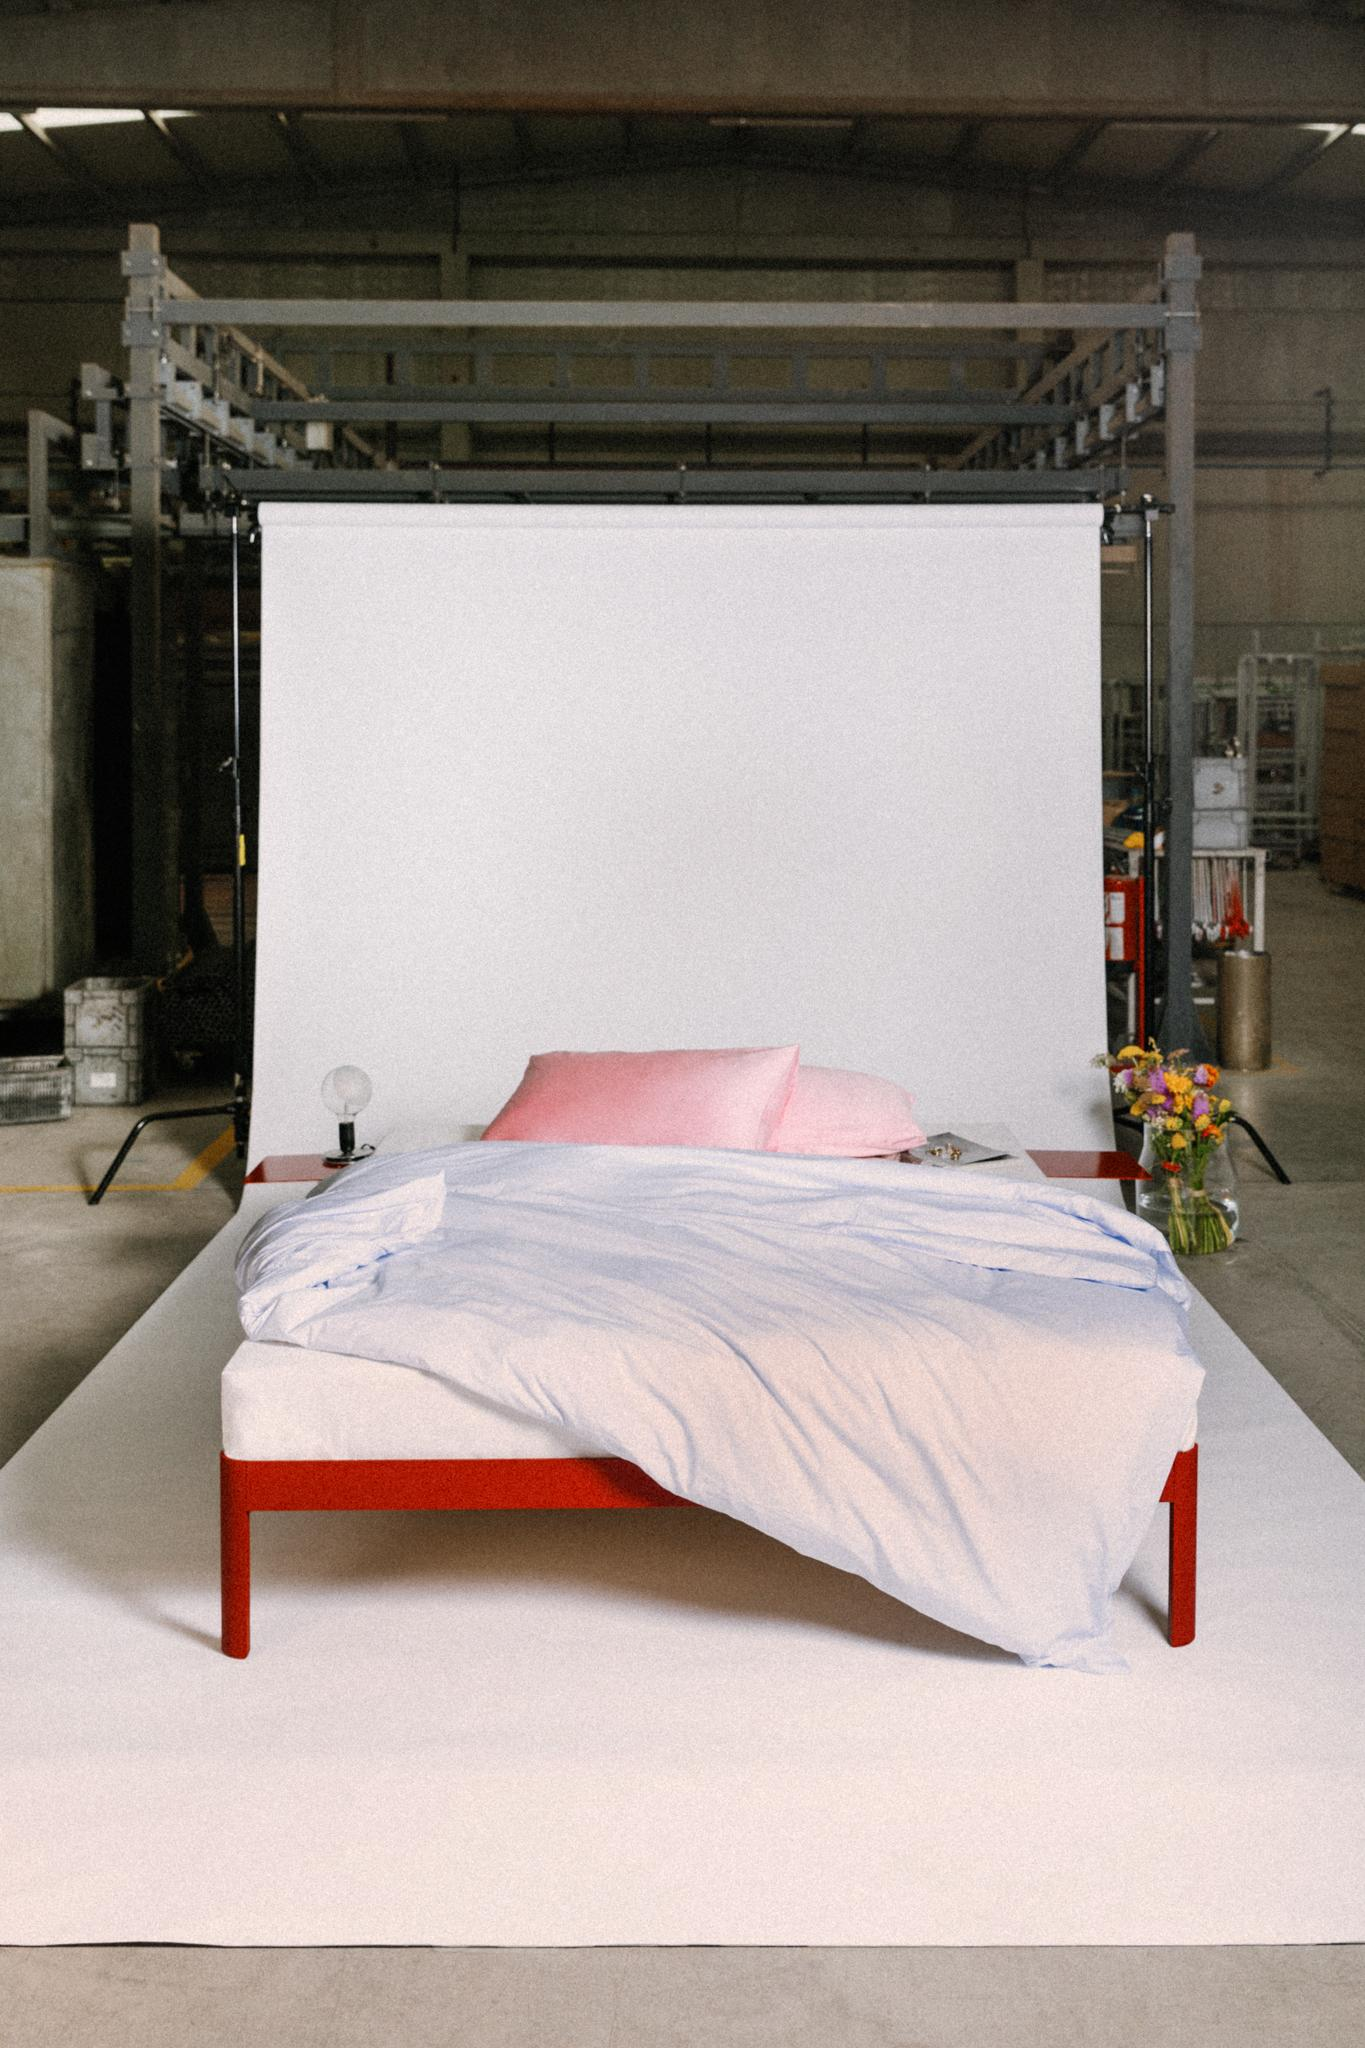 The ReFramed bed with red frame and side tables, with white bedding and pink pillows, photographed on a set in the factory. The edges of a white paper background are visible, and on the bed sides are a small lamp and a vase with flowers